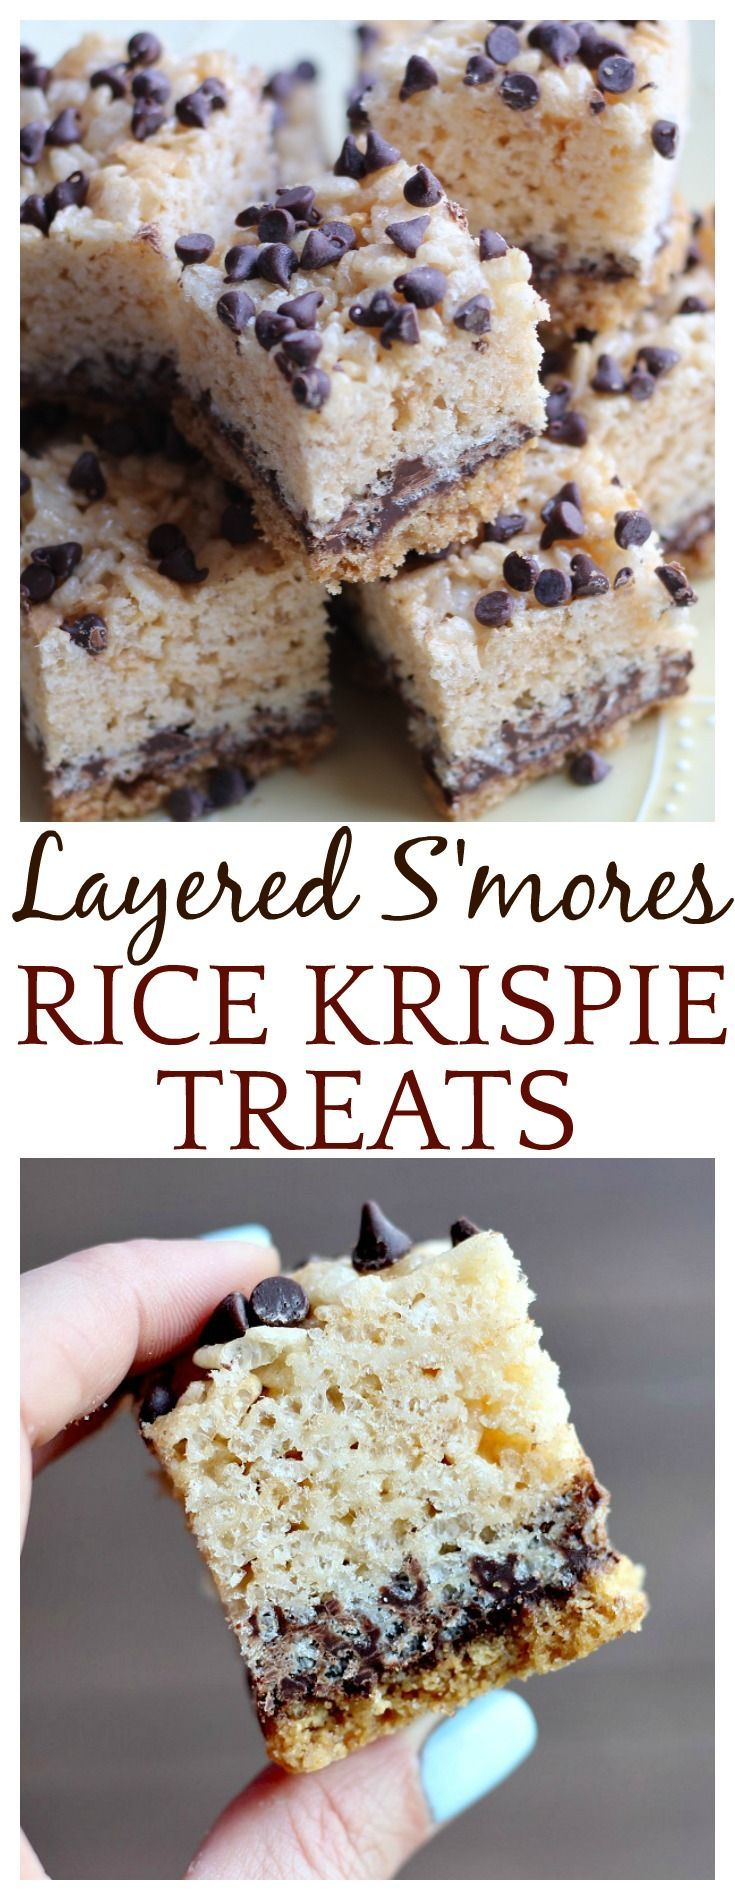 Layered S'mores Rice Krispie Treats are a classic summer dessert that can be enjoyed anytime of the year! They can be made ahead of time, and are easy to pack! | #dlbrecipes #smores #ricekrispietreats #dessert #summerdessert